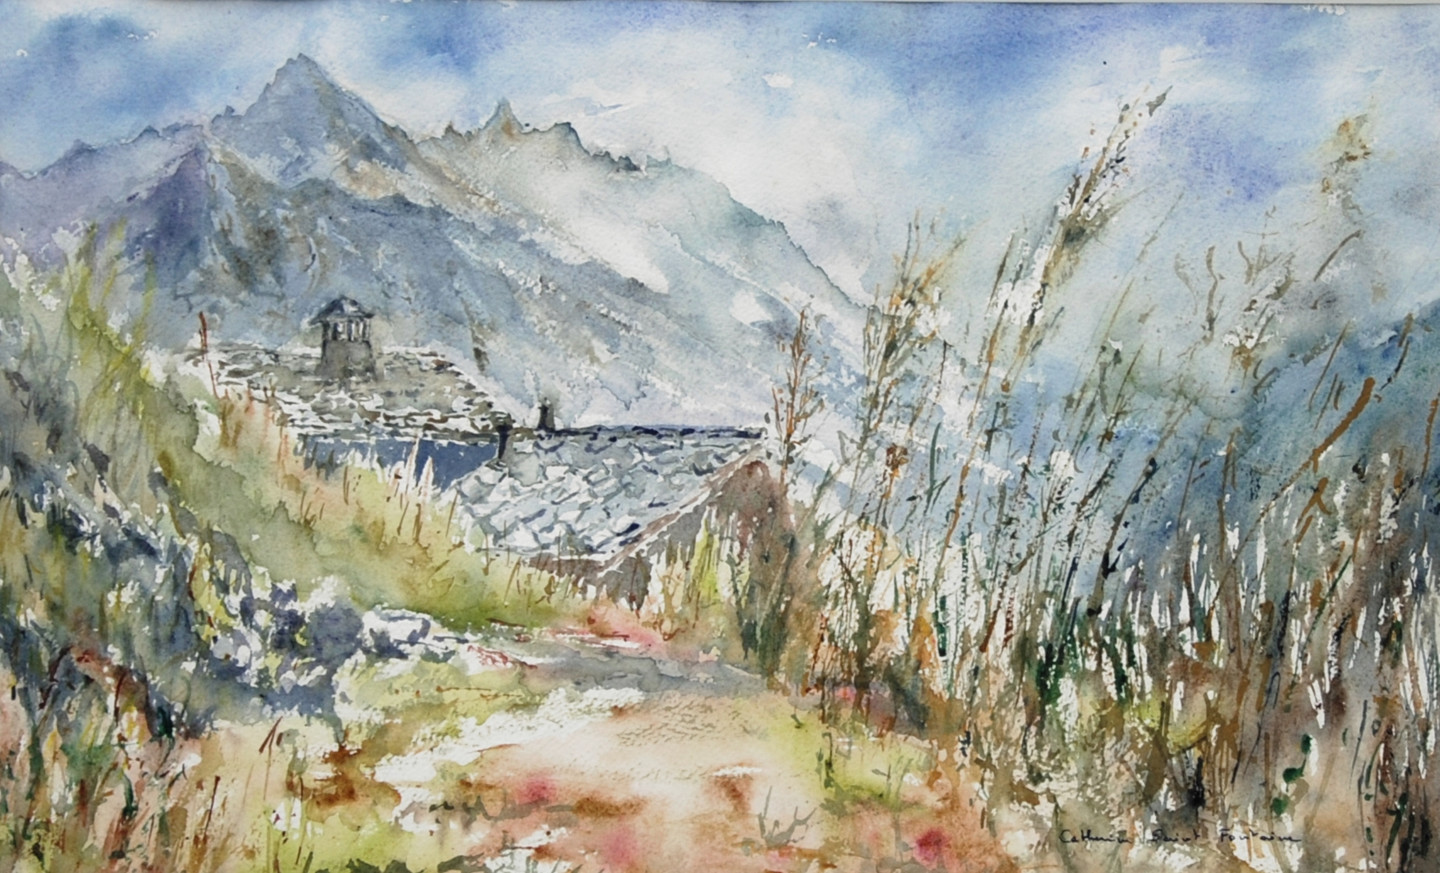 catherinesaintfontaine - Volovron, Val d'Herens